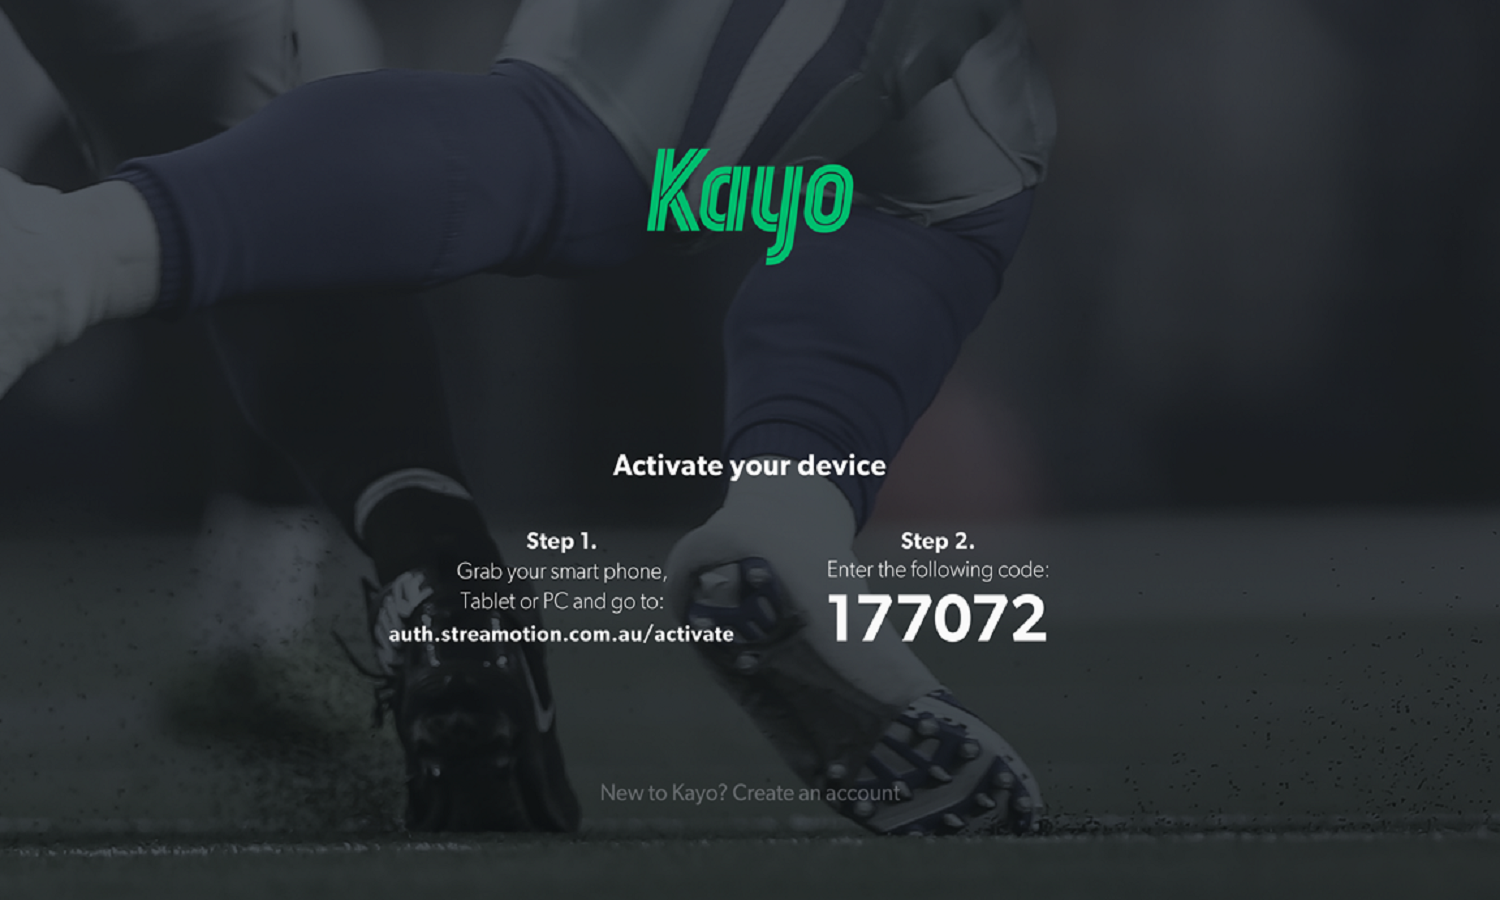 Learn How To Activate Kayo On Your Device Easily?